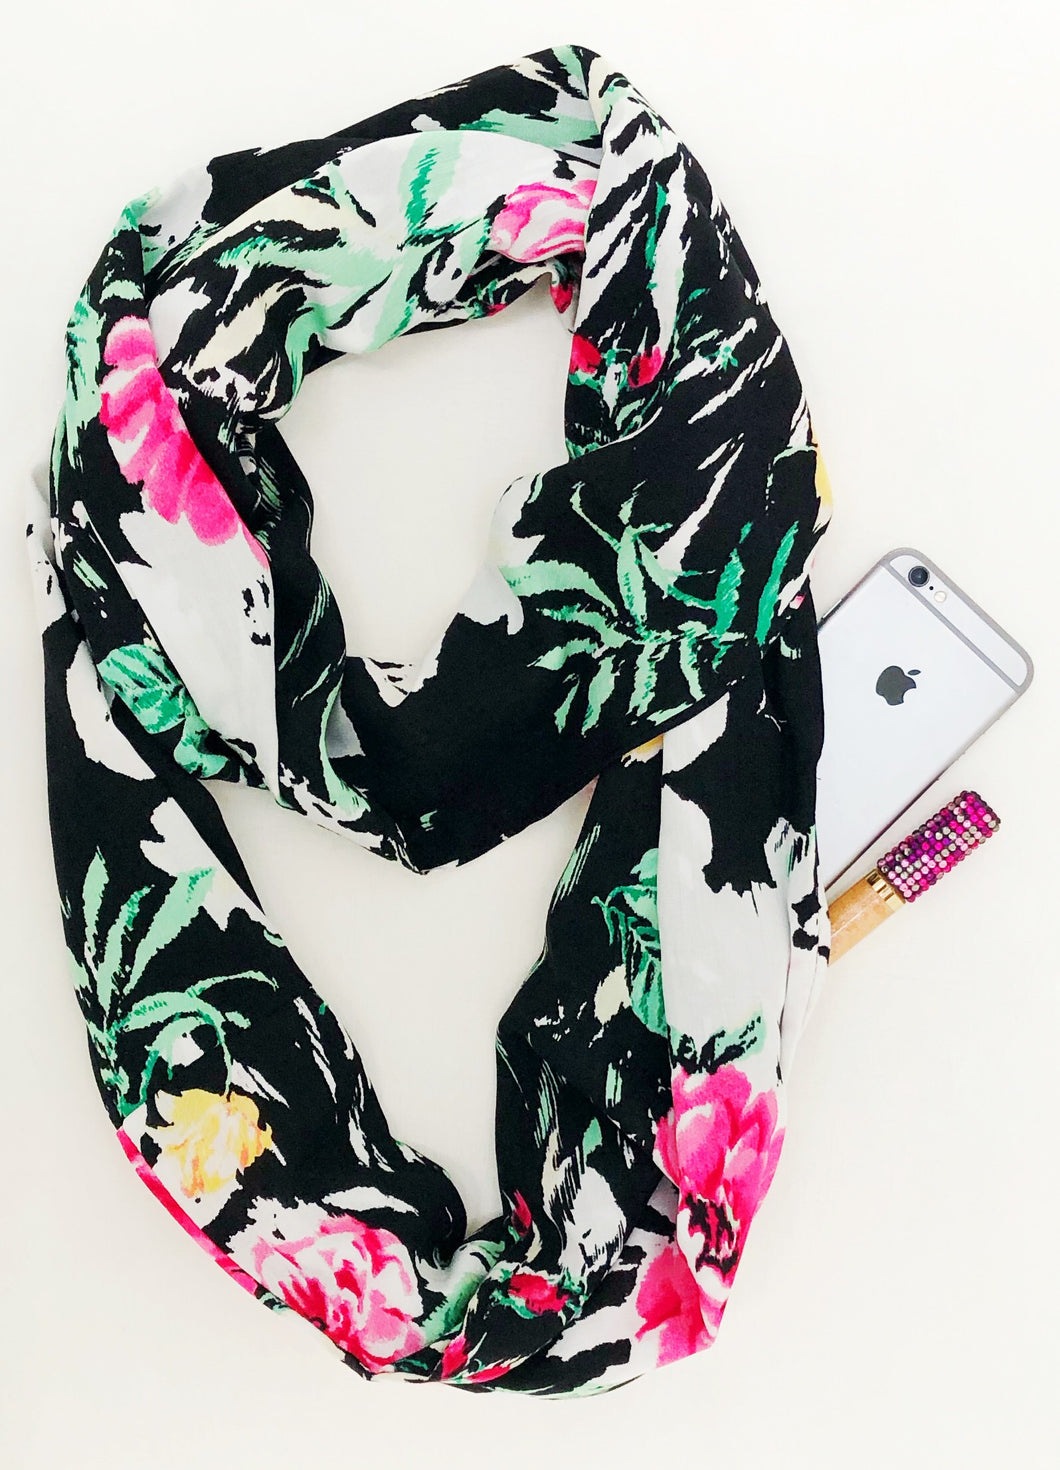 infinity travel scarf features a hidden pocket with floral print design